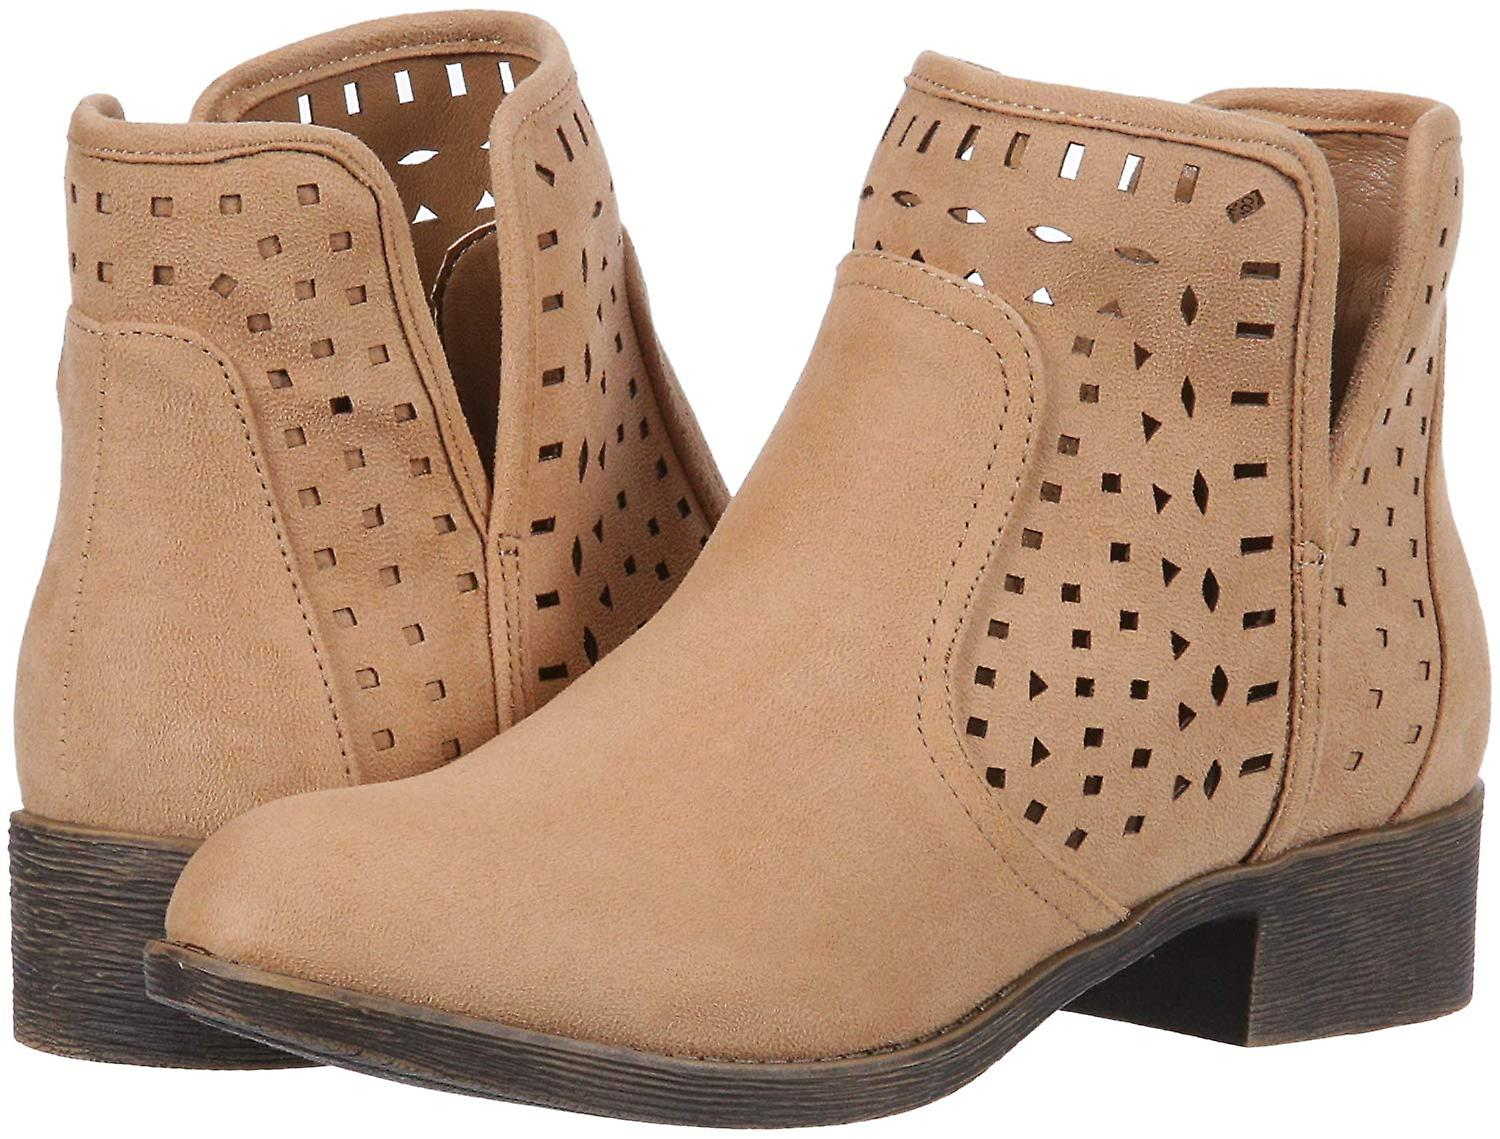 Rampage Kobiet & apos;s Chuck Casual Pull on Side Cut Out Perforated Comfortable Low zbiMc